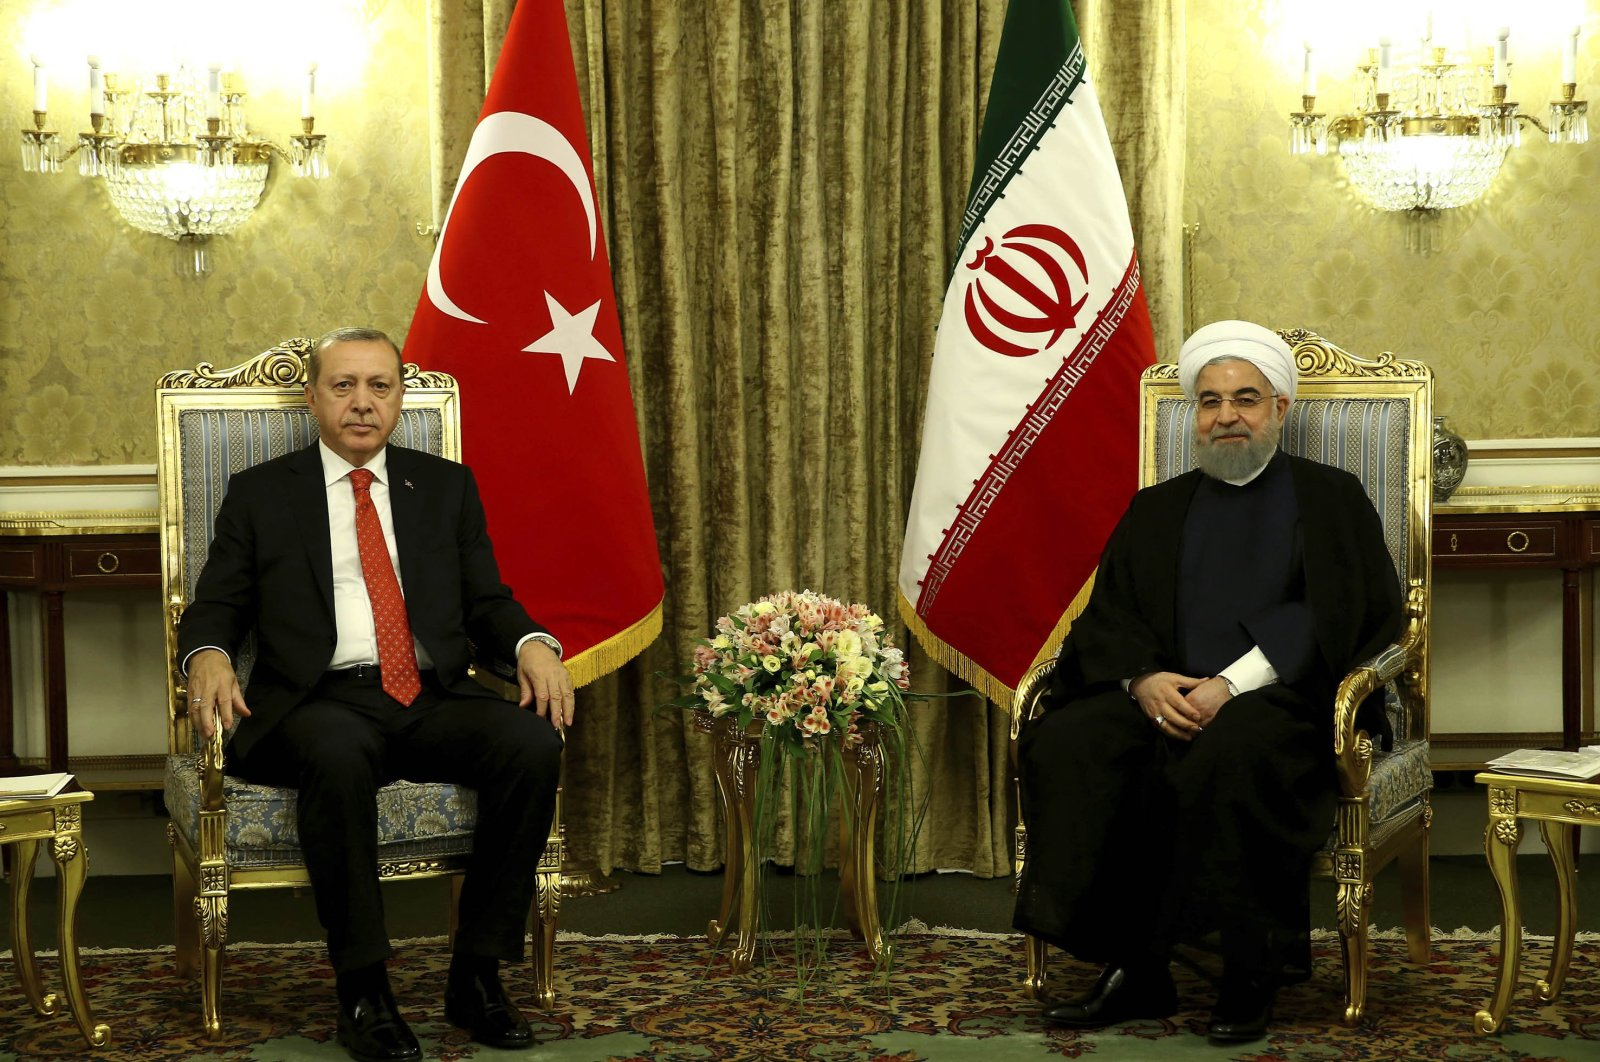 President Recep Tayyip Erdoğan and Iranian President Hassan Rouhani are seen during a meeting in Tehran, Iran, Oct. 4, 2017. (AP Photo)